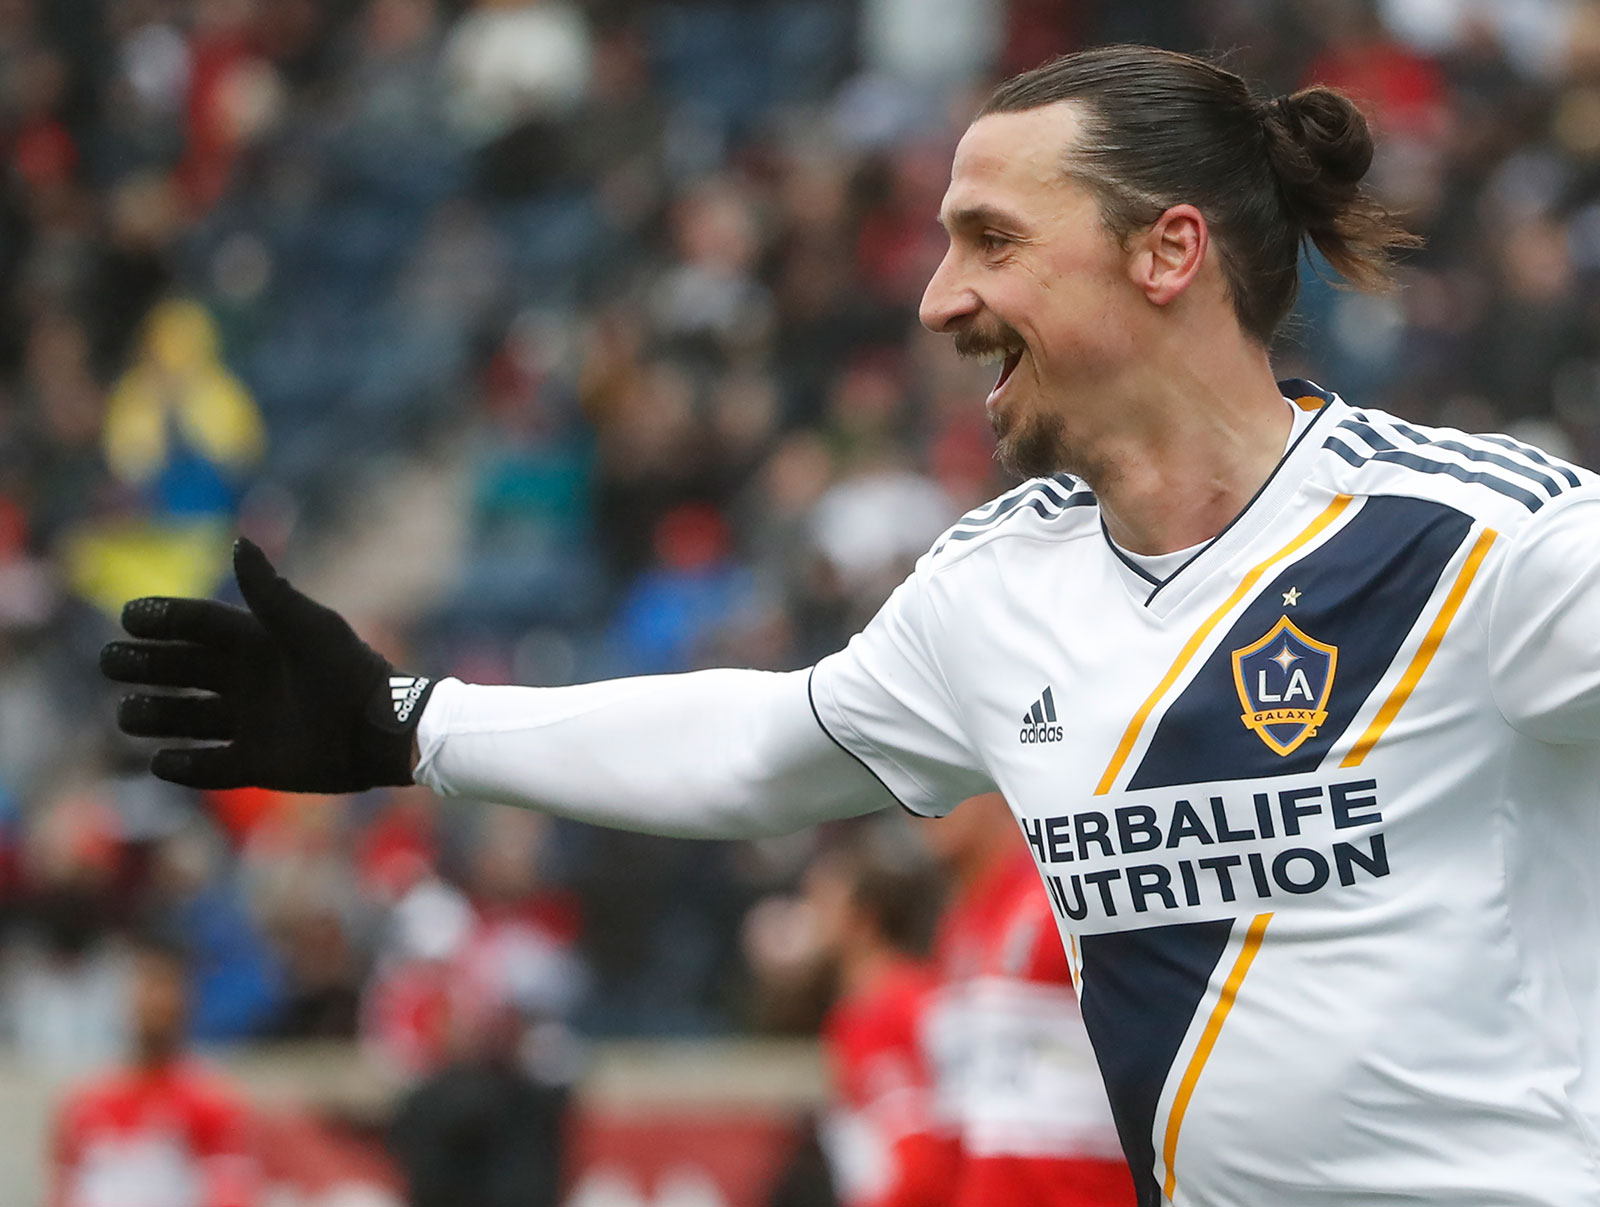 Zlatan Ibrahimović celebrating during LA Galaxy-Chicago Fire at Toyota Park on April 14, 2018. (KAMIL KRZACZYNSKI/AFP/Getty Images)